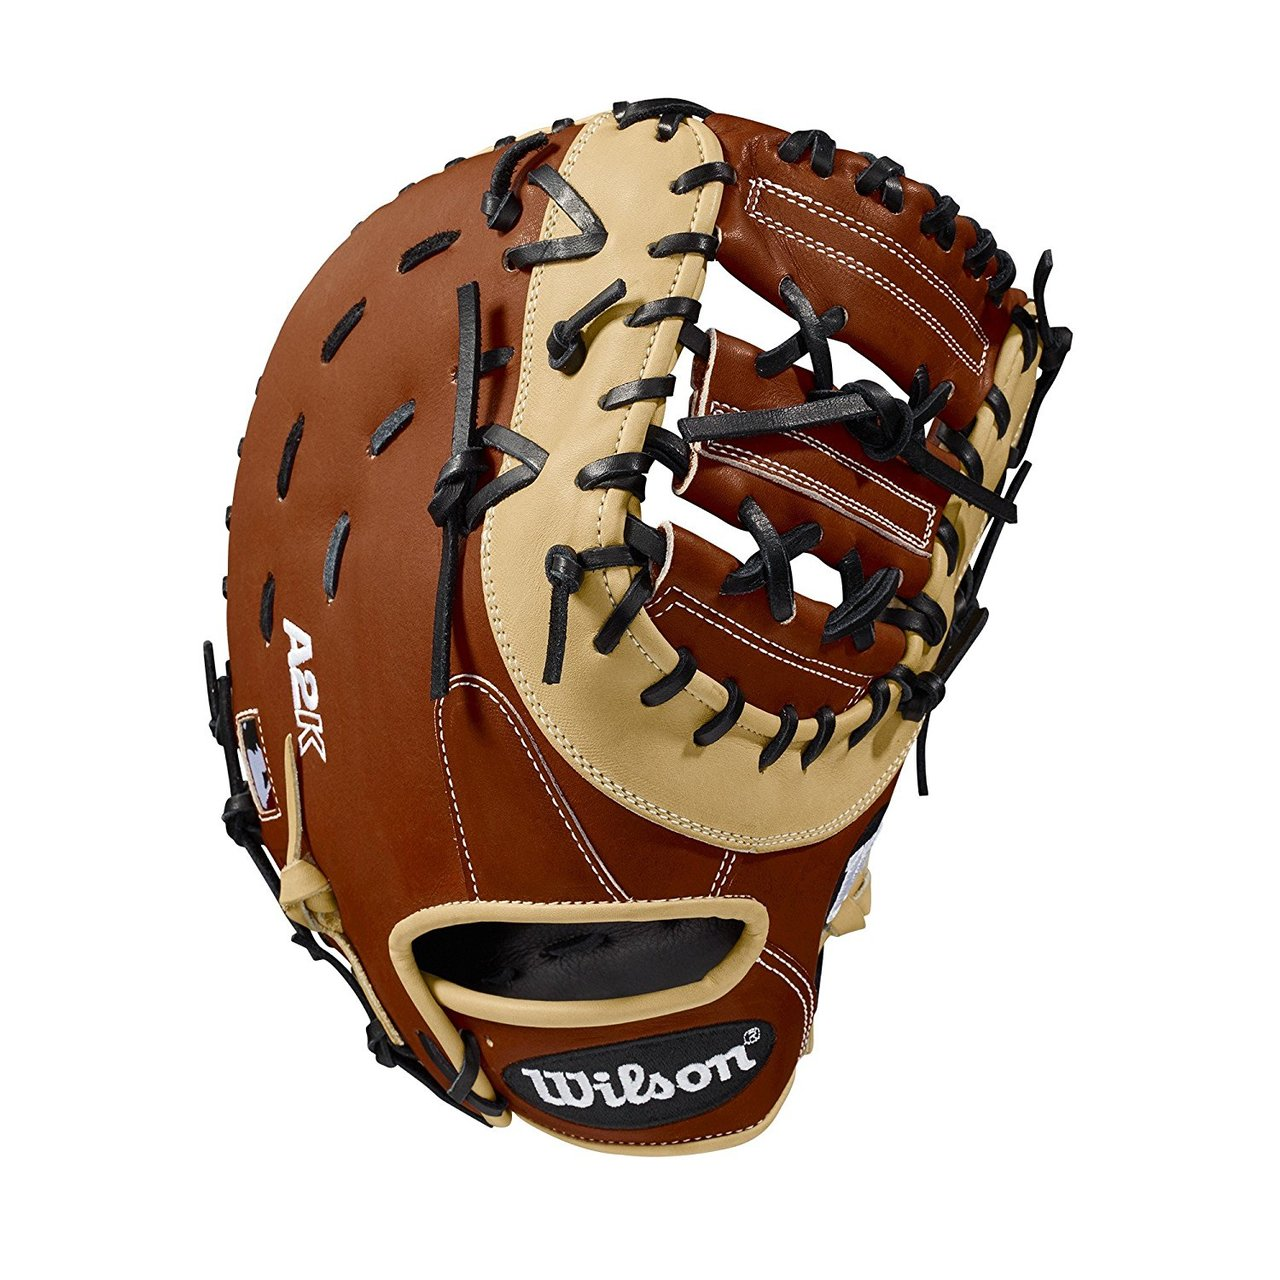 wilson-2018-a2k-1617-first-base-mitt-right-hand-throw-12-5 WTA2KRB181617-RightHandThrow Wilson 887768592073 12.5 first base model double horizontal bar web Copper blonde and